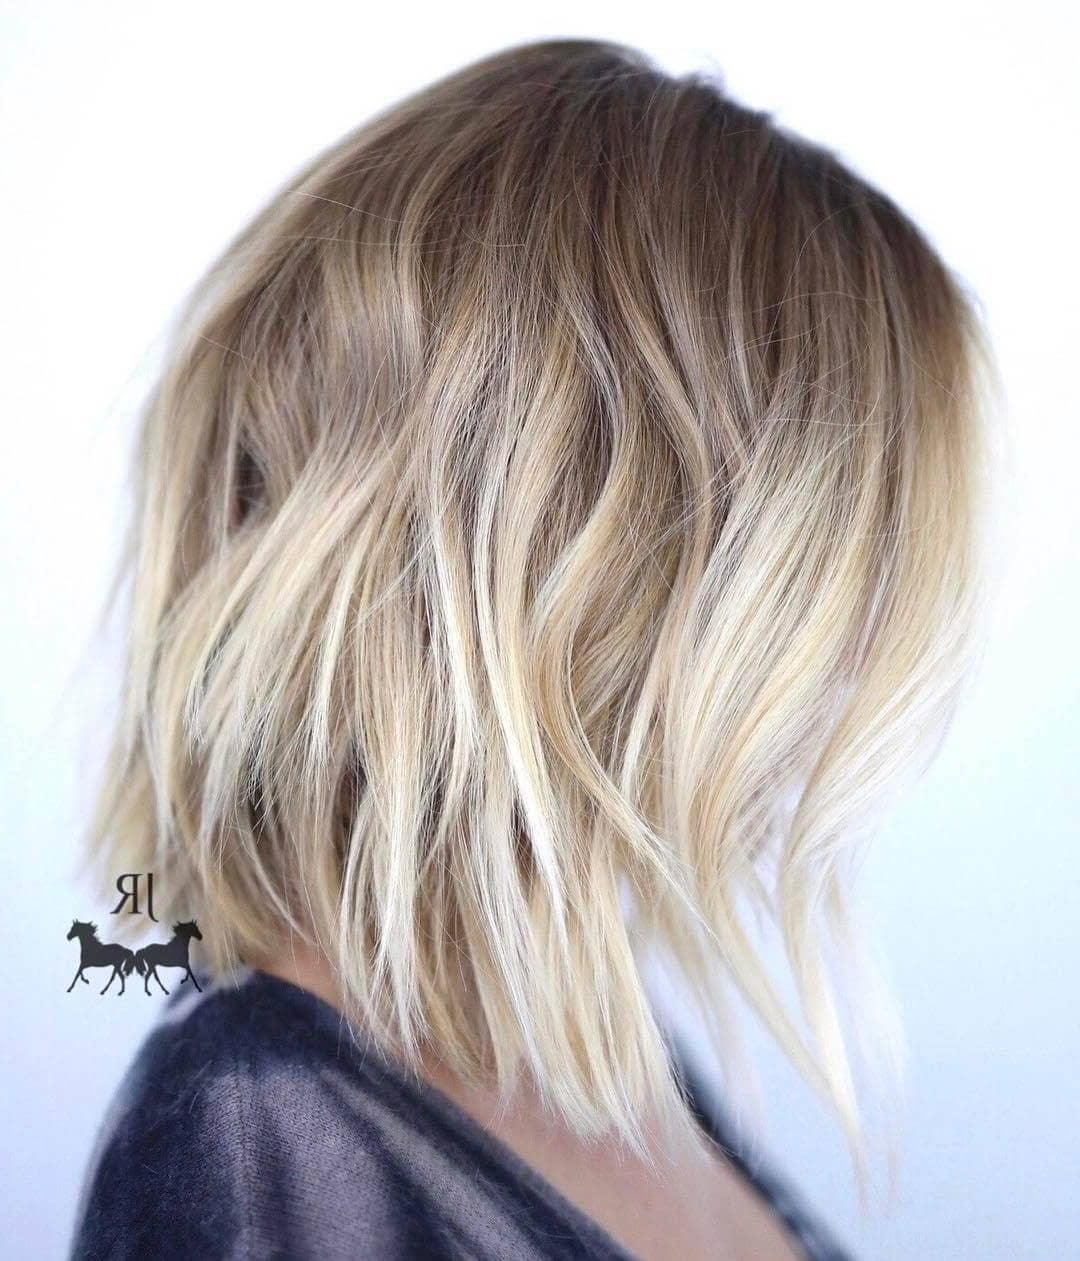 50 Fresh Short Blonde Hair Ideas To Update Your Style In 2018 Pertaining To Angled Burgundy Bob Hairstyles With Voluminous Layers (View 8 of 20)